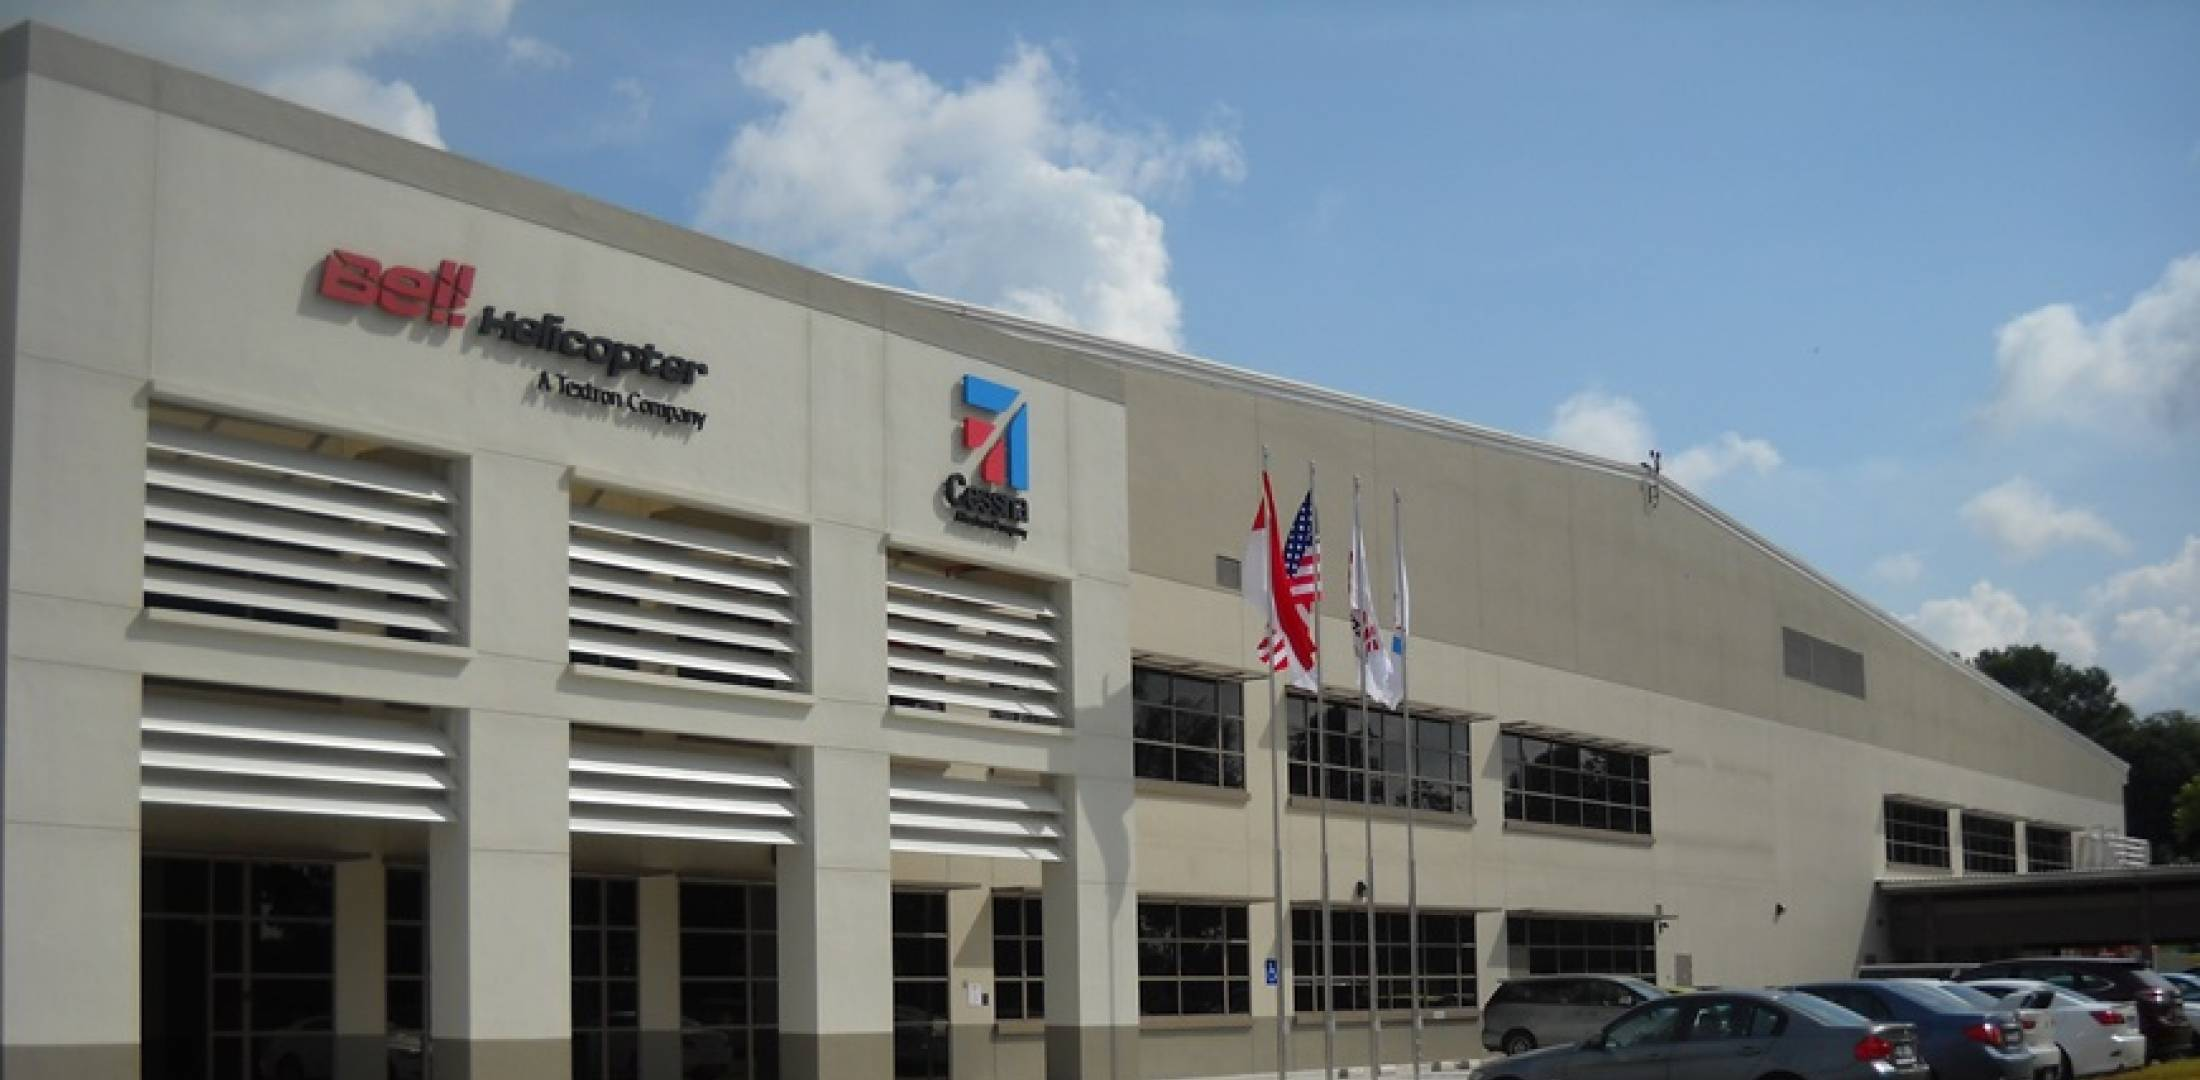 Textron Aviation's Singapore Center holds authorizations from nearly a dozen places in Asia Pacific, as well as the U.S.